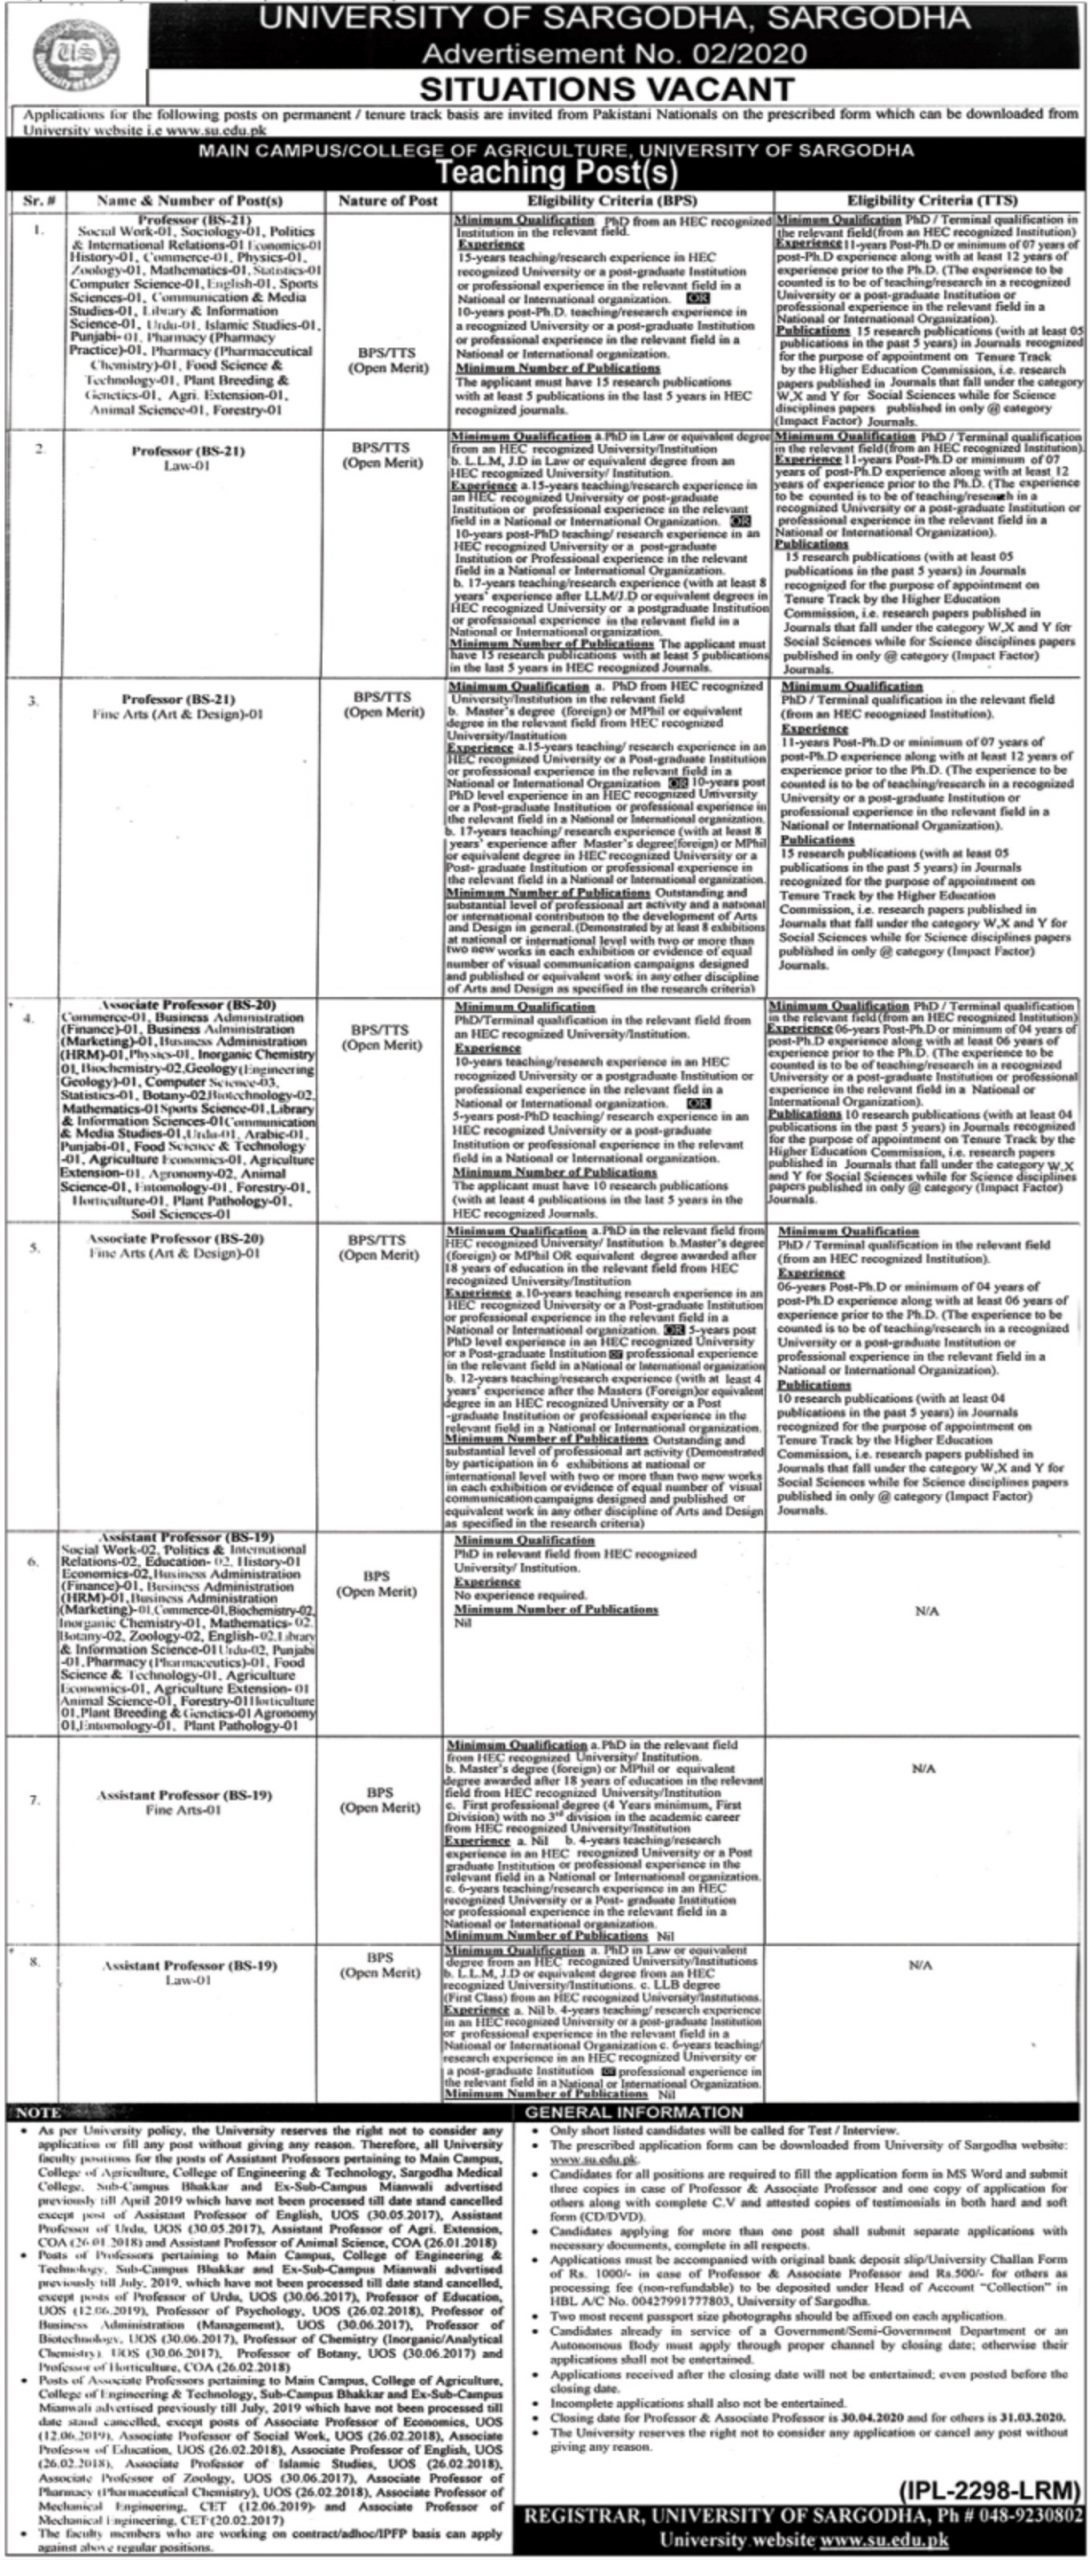 University of Sargodha Jobs 2020